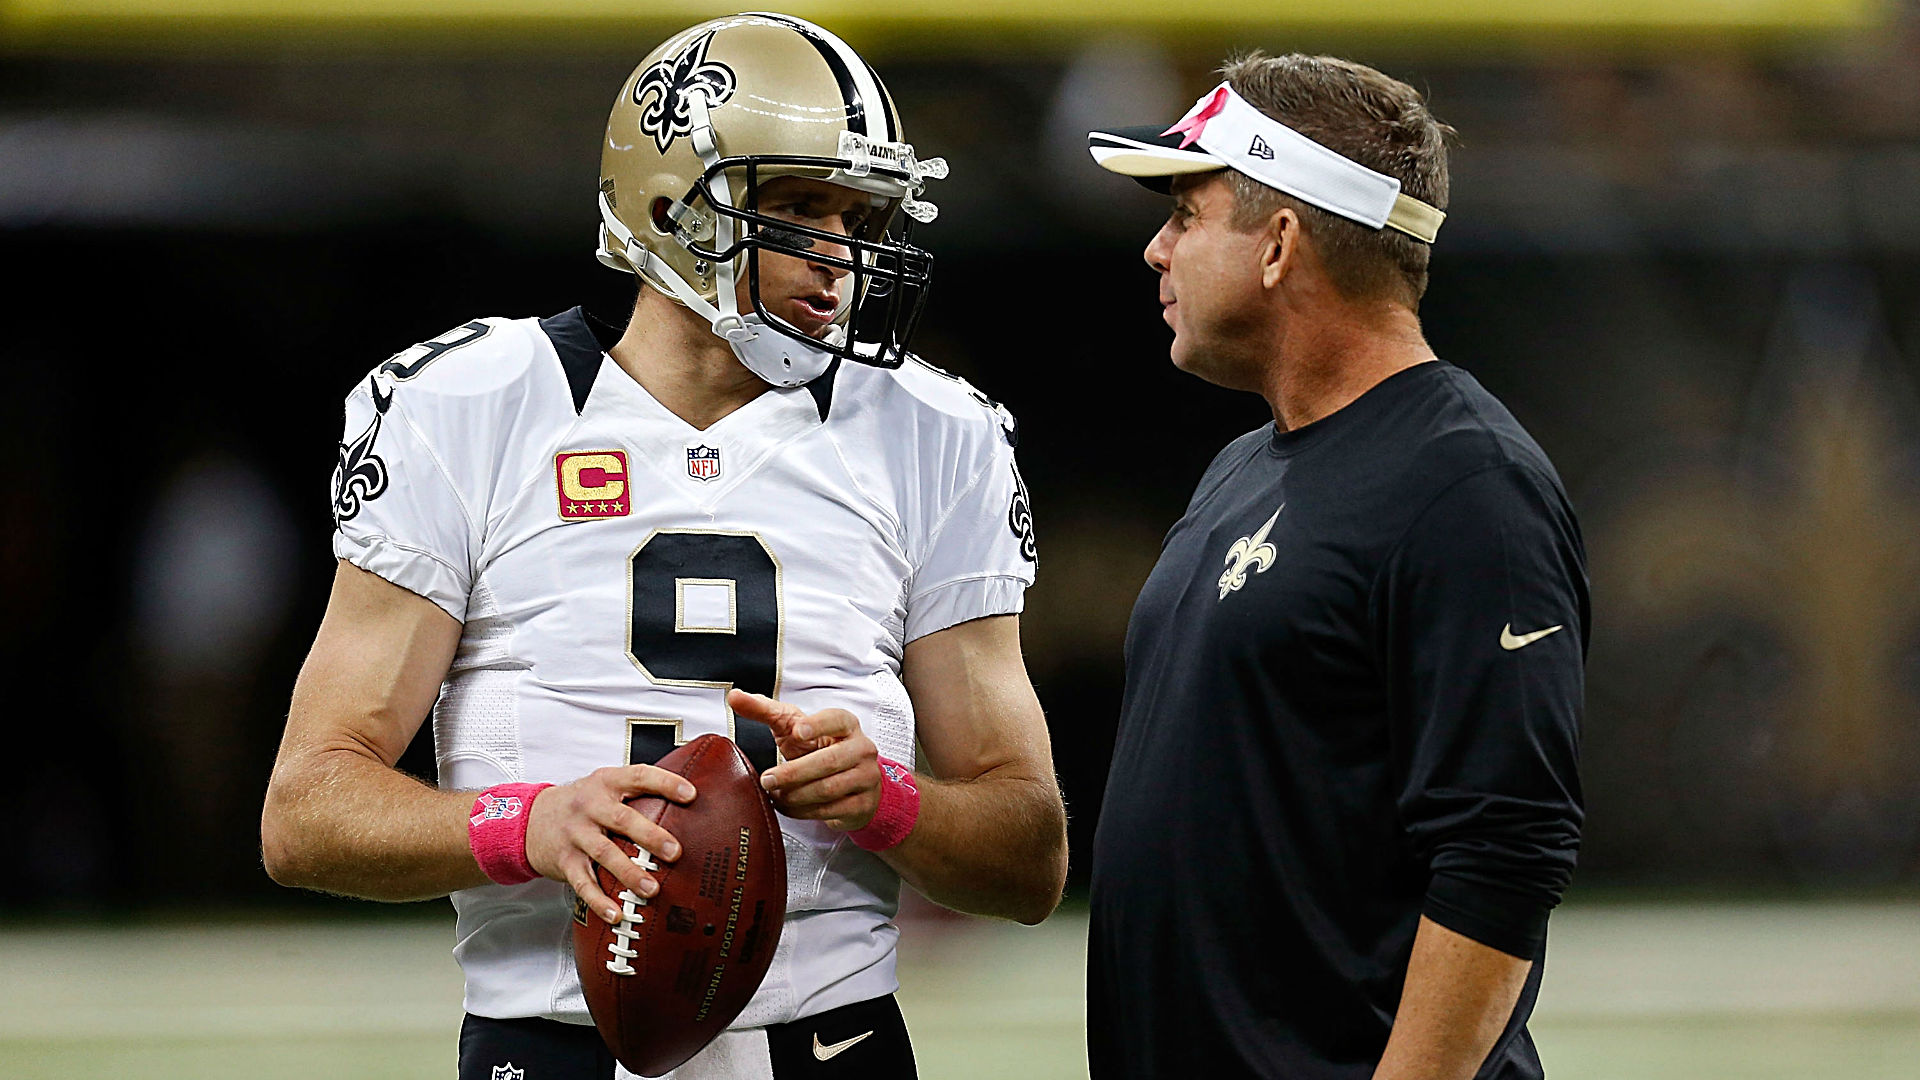 brees-drew-payton-sean-032415-usnews-getty-ftr